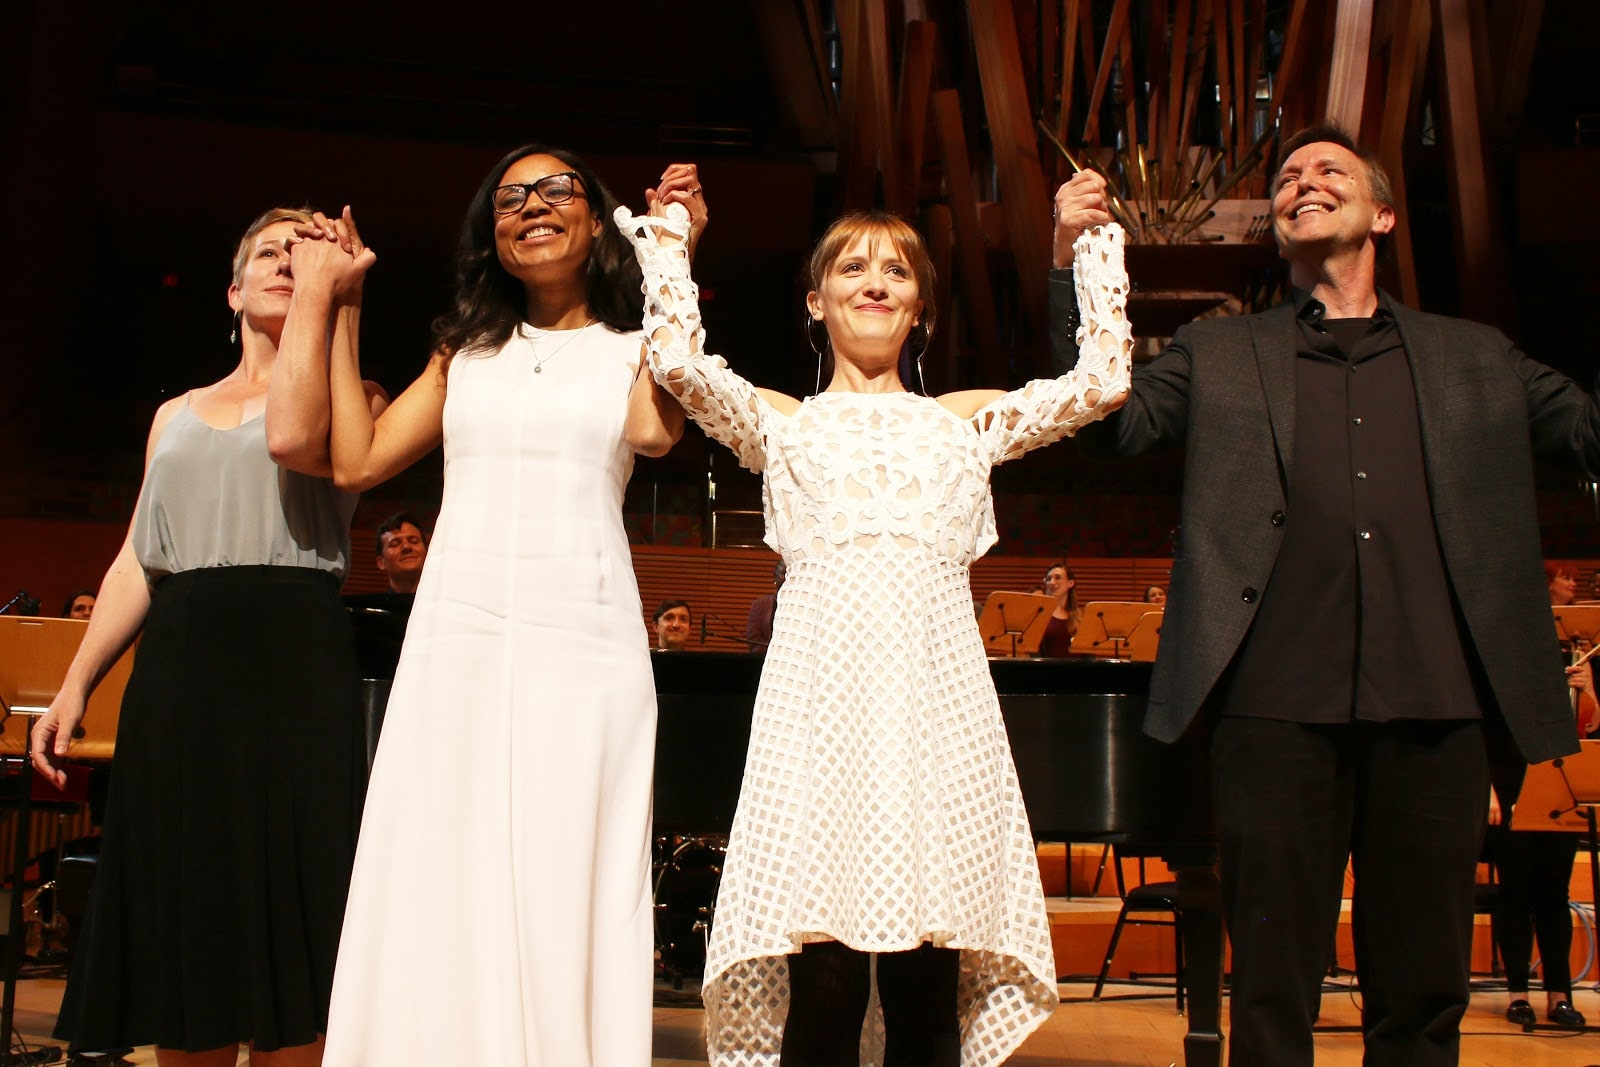 Sayd Randle, Sarah LaBrie, Ellen Reid, and Grant Gershon bowing after the world premiere